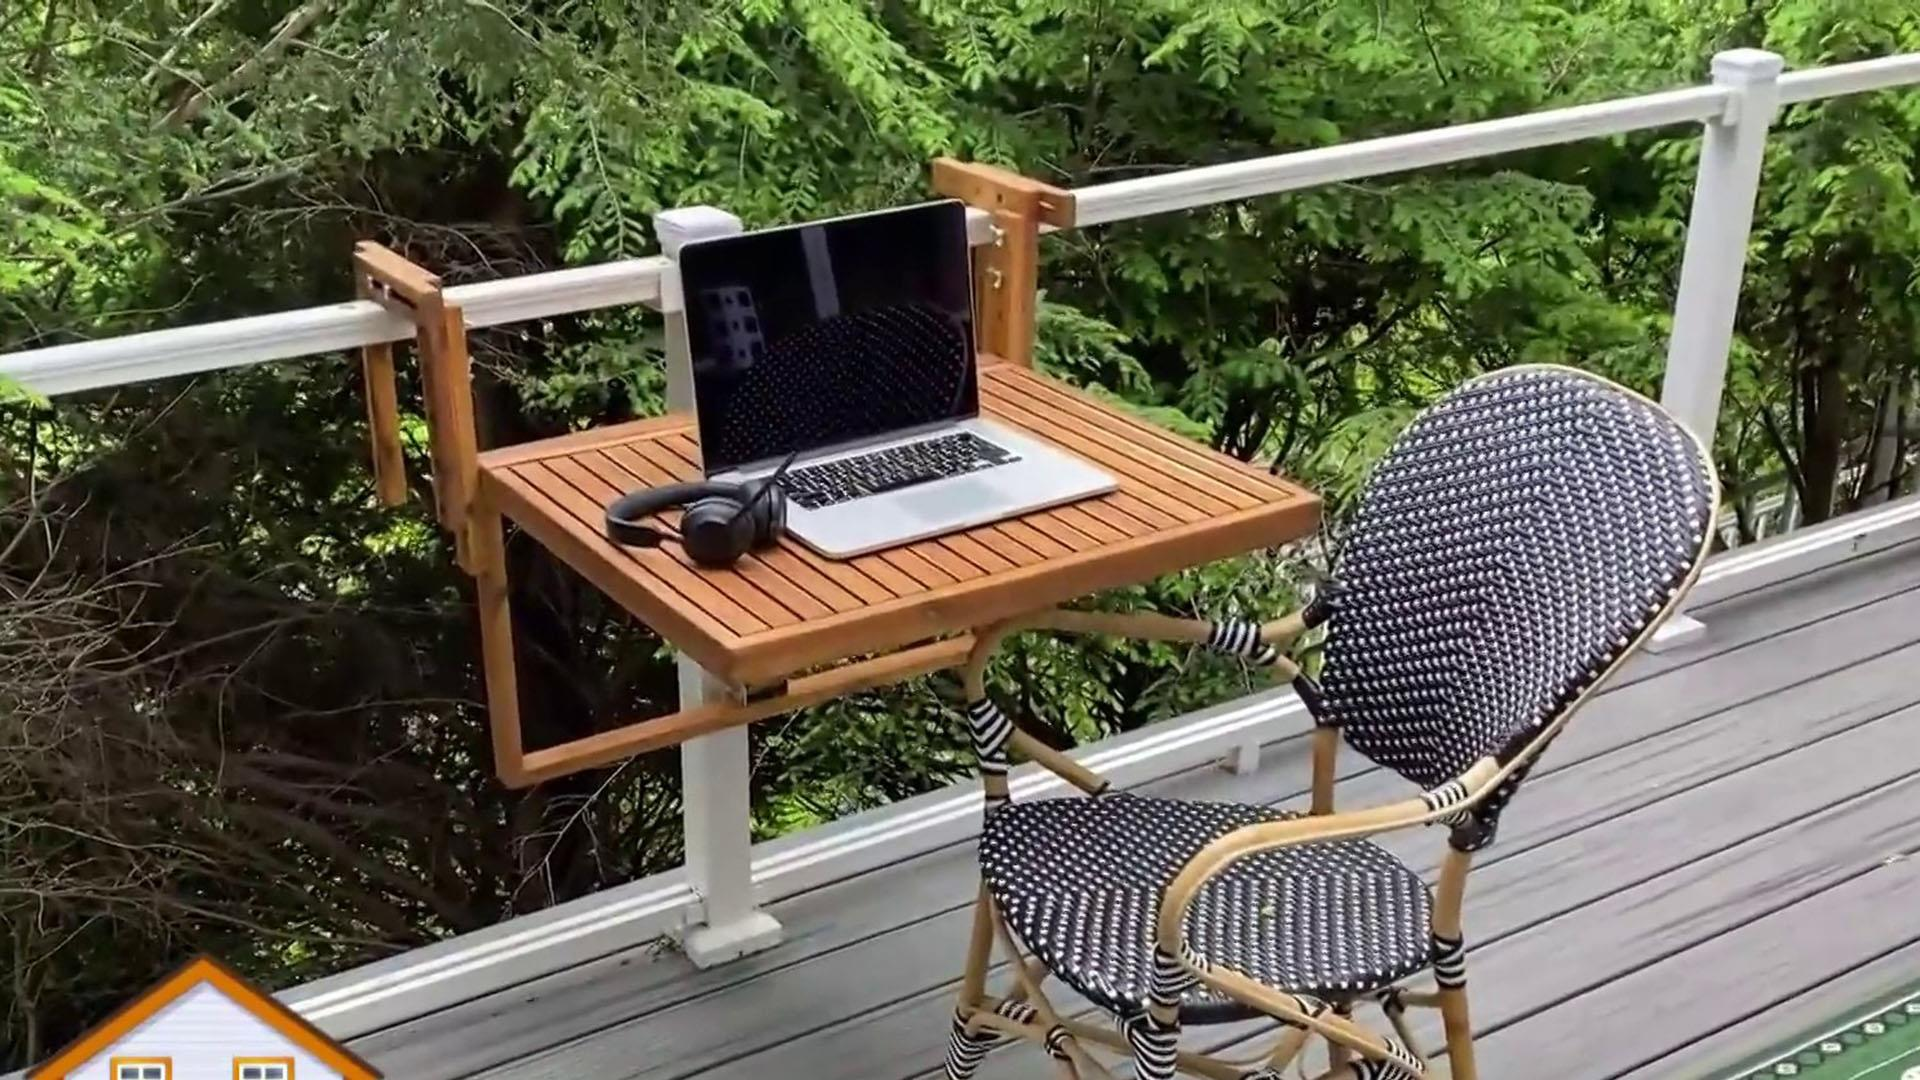 temporary mini outdoor workspace set-up